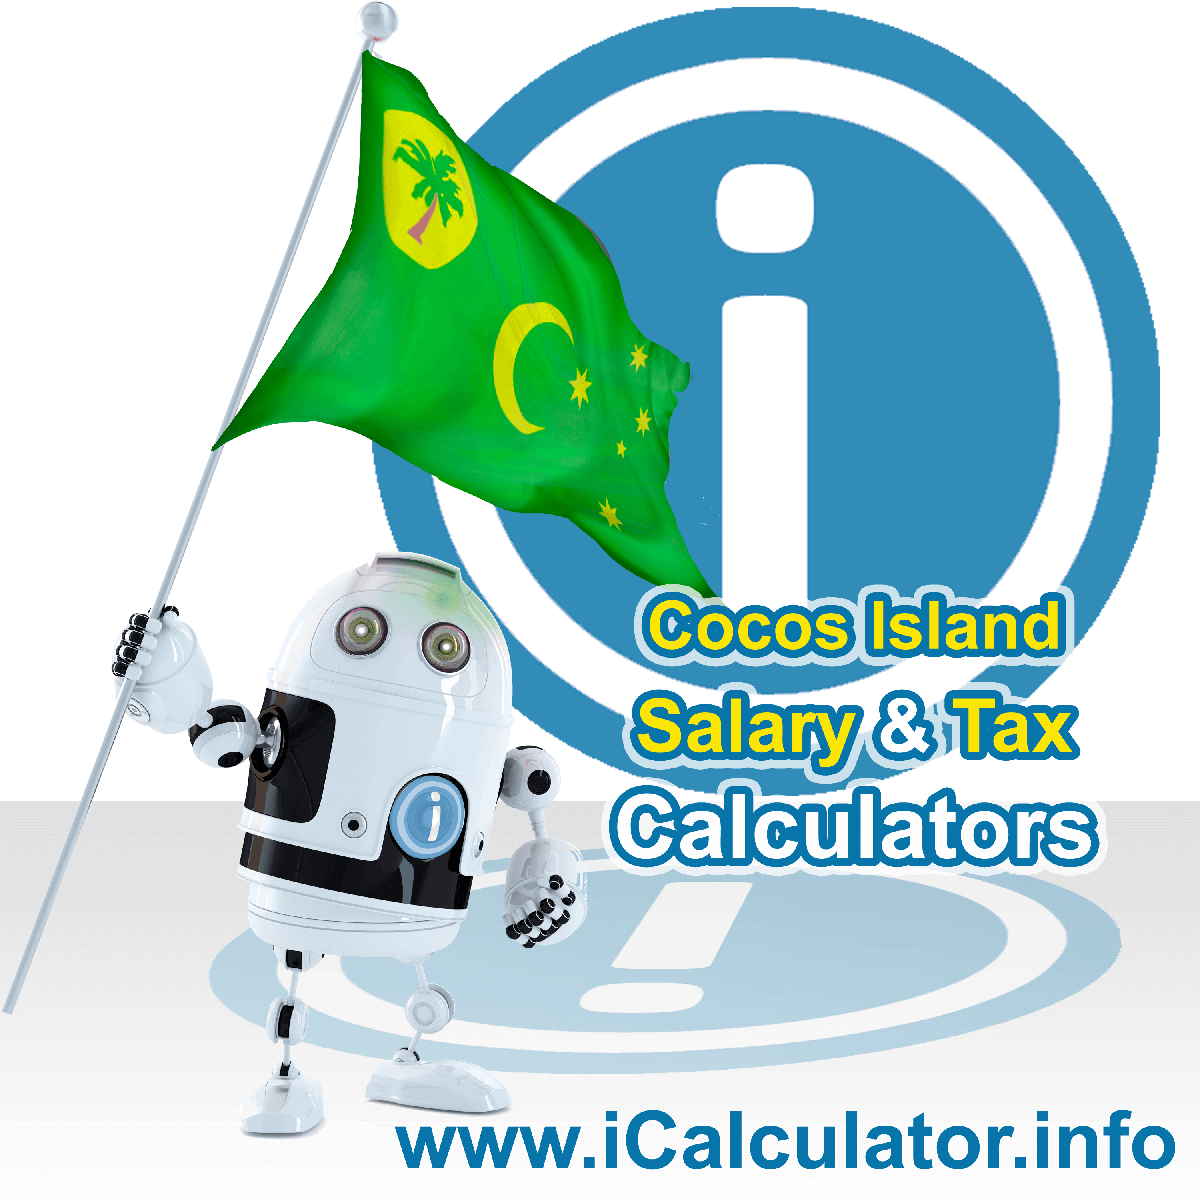 Cocos Islands Wage Calculator. This image shows the Cocos Islands flag and information relating to the tax formula for the Cocos Islands Tax Calculator